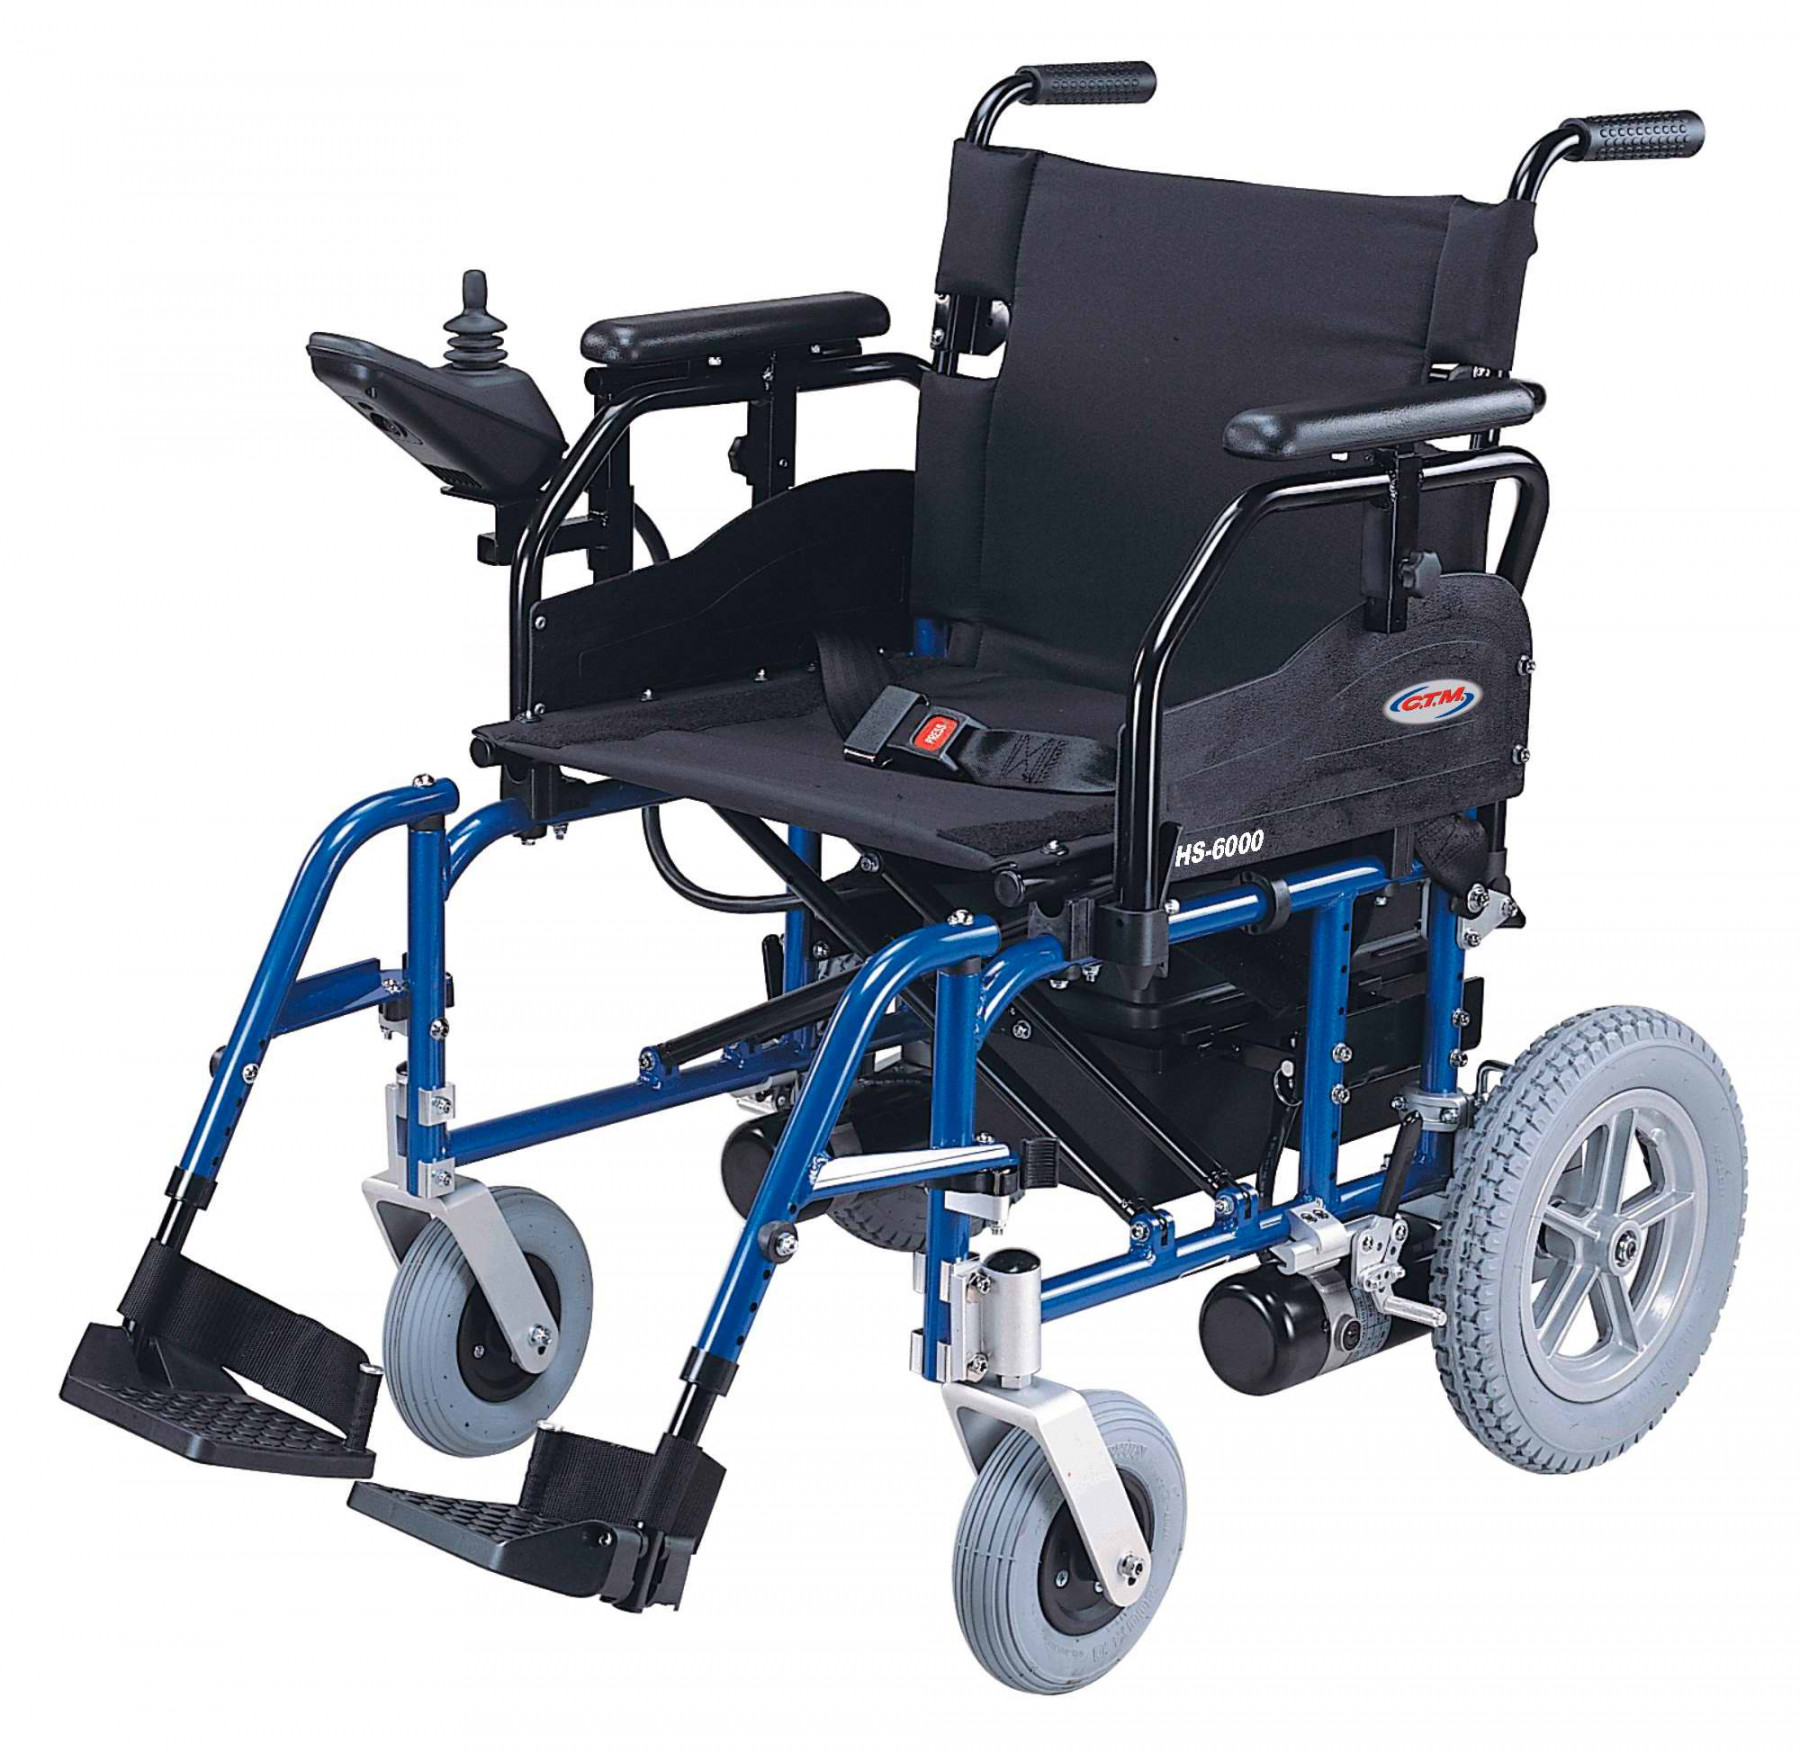 Mobility Scooters For Sale >> CTM HS-6200 Power Wheelchair for Sale | Lowest Prices Tax-Free & Free Shipping